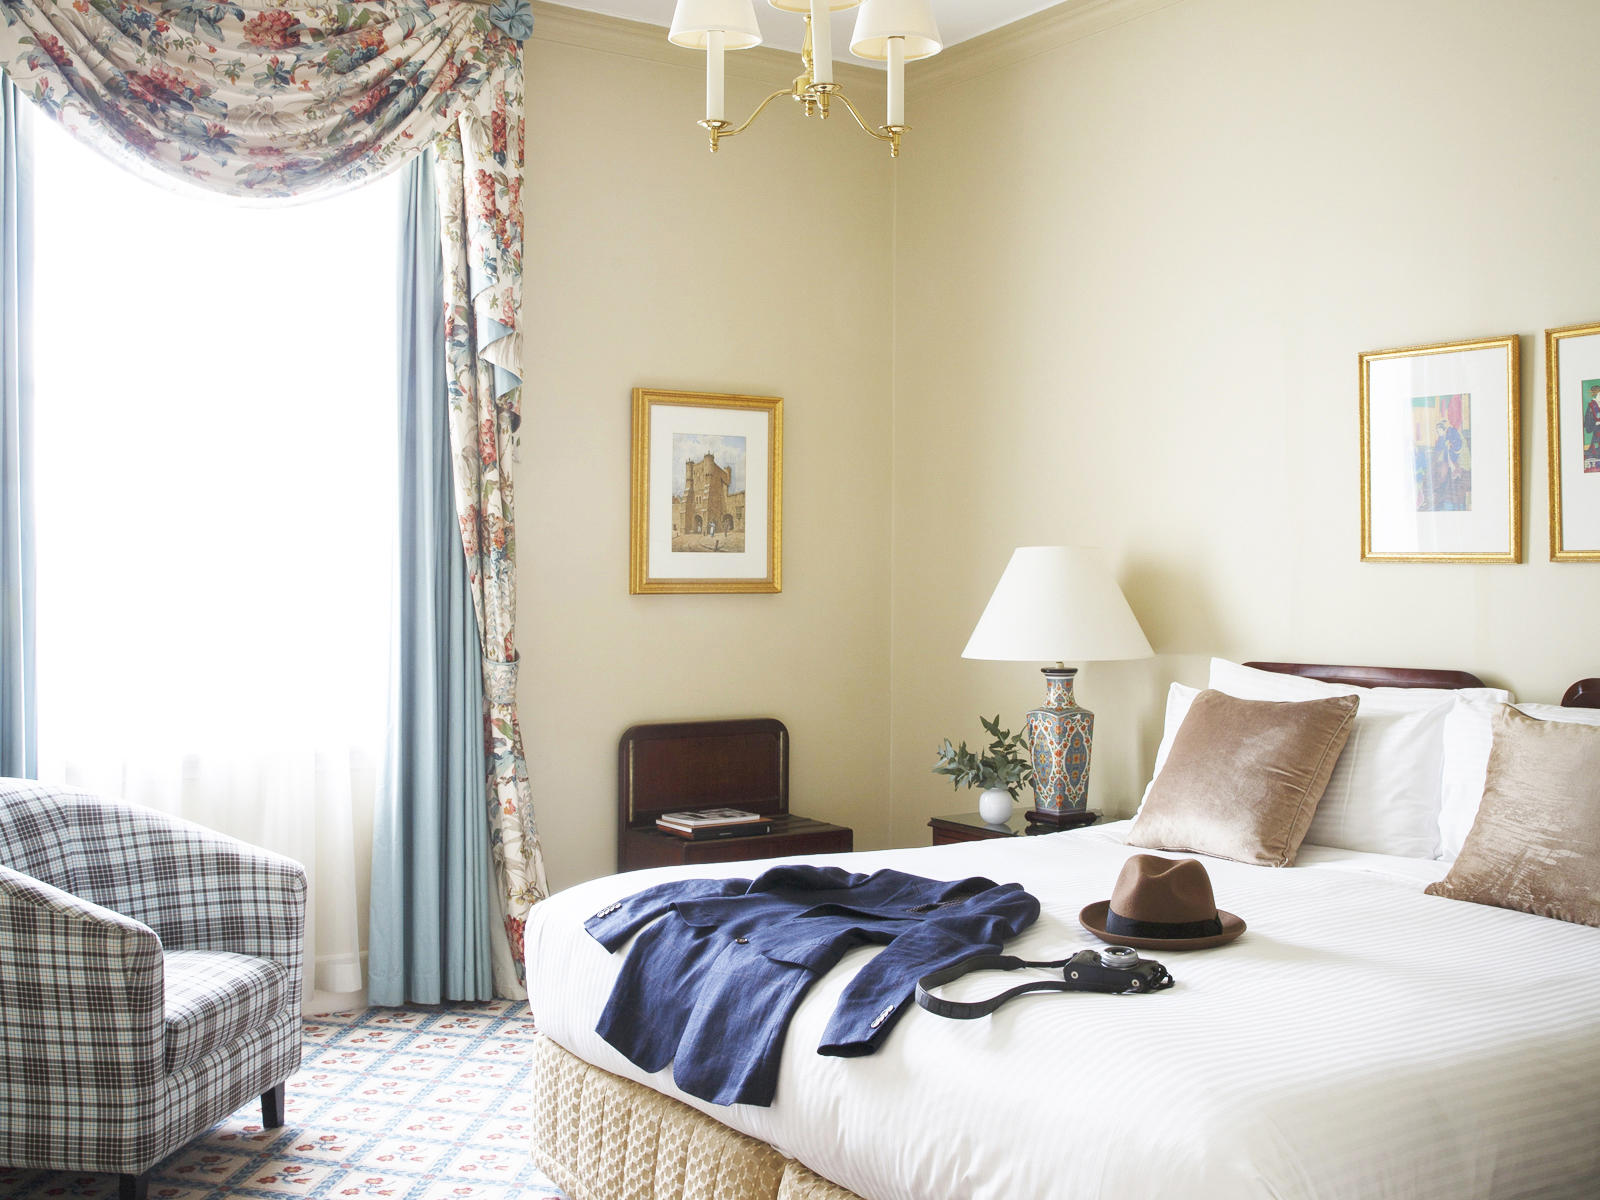 Rooms at The Hotel Windsor Melbourne